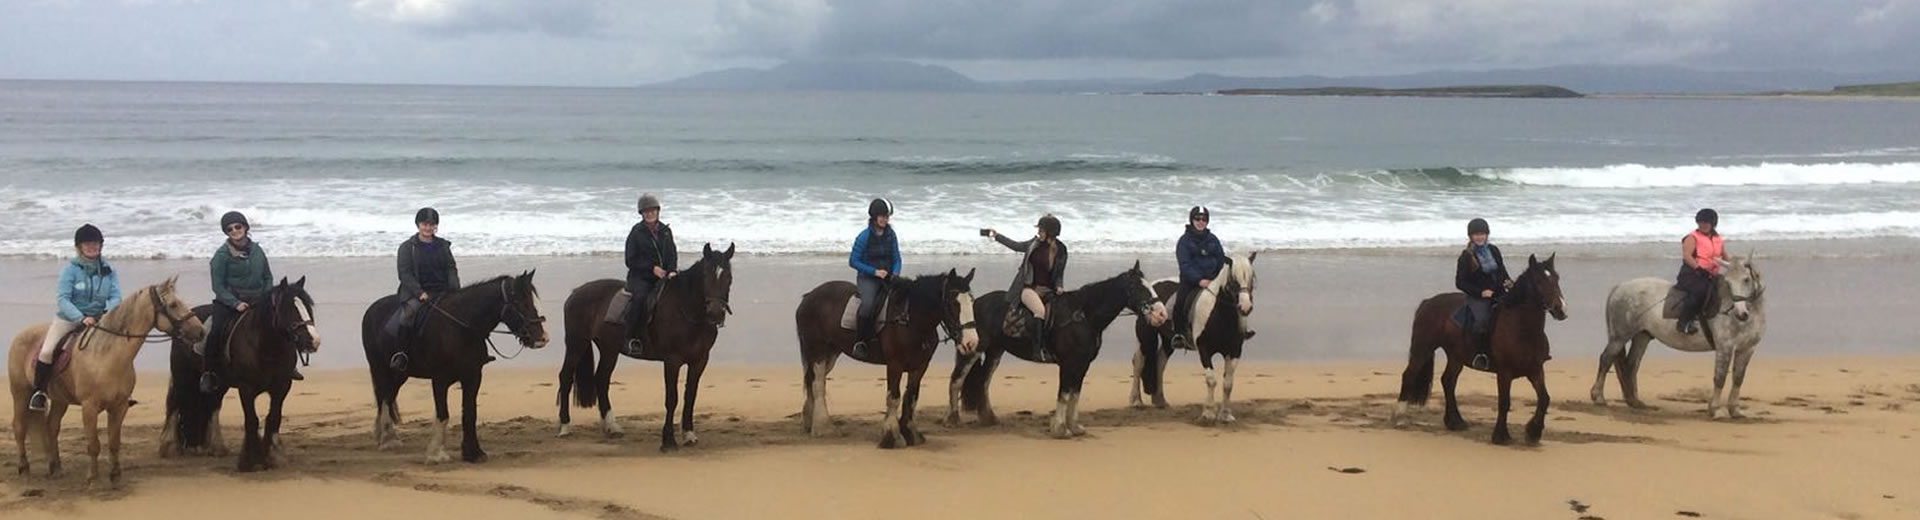 Group of riders on beach with Seatrails in Summer time